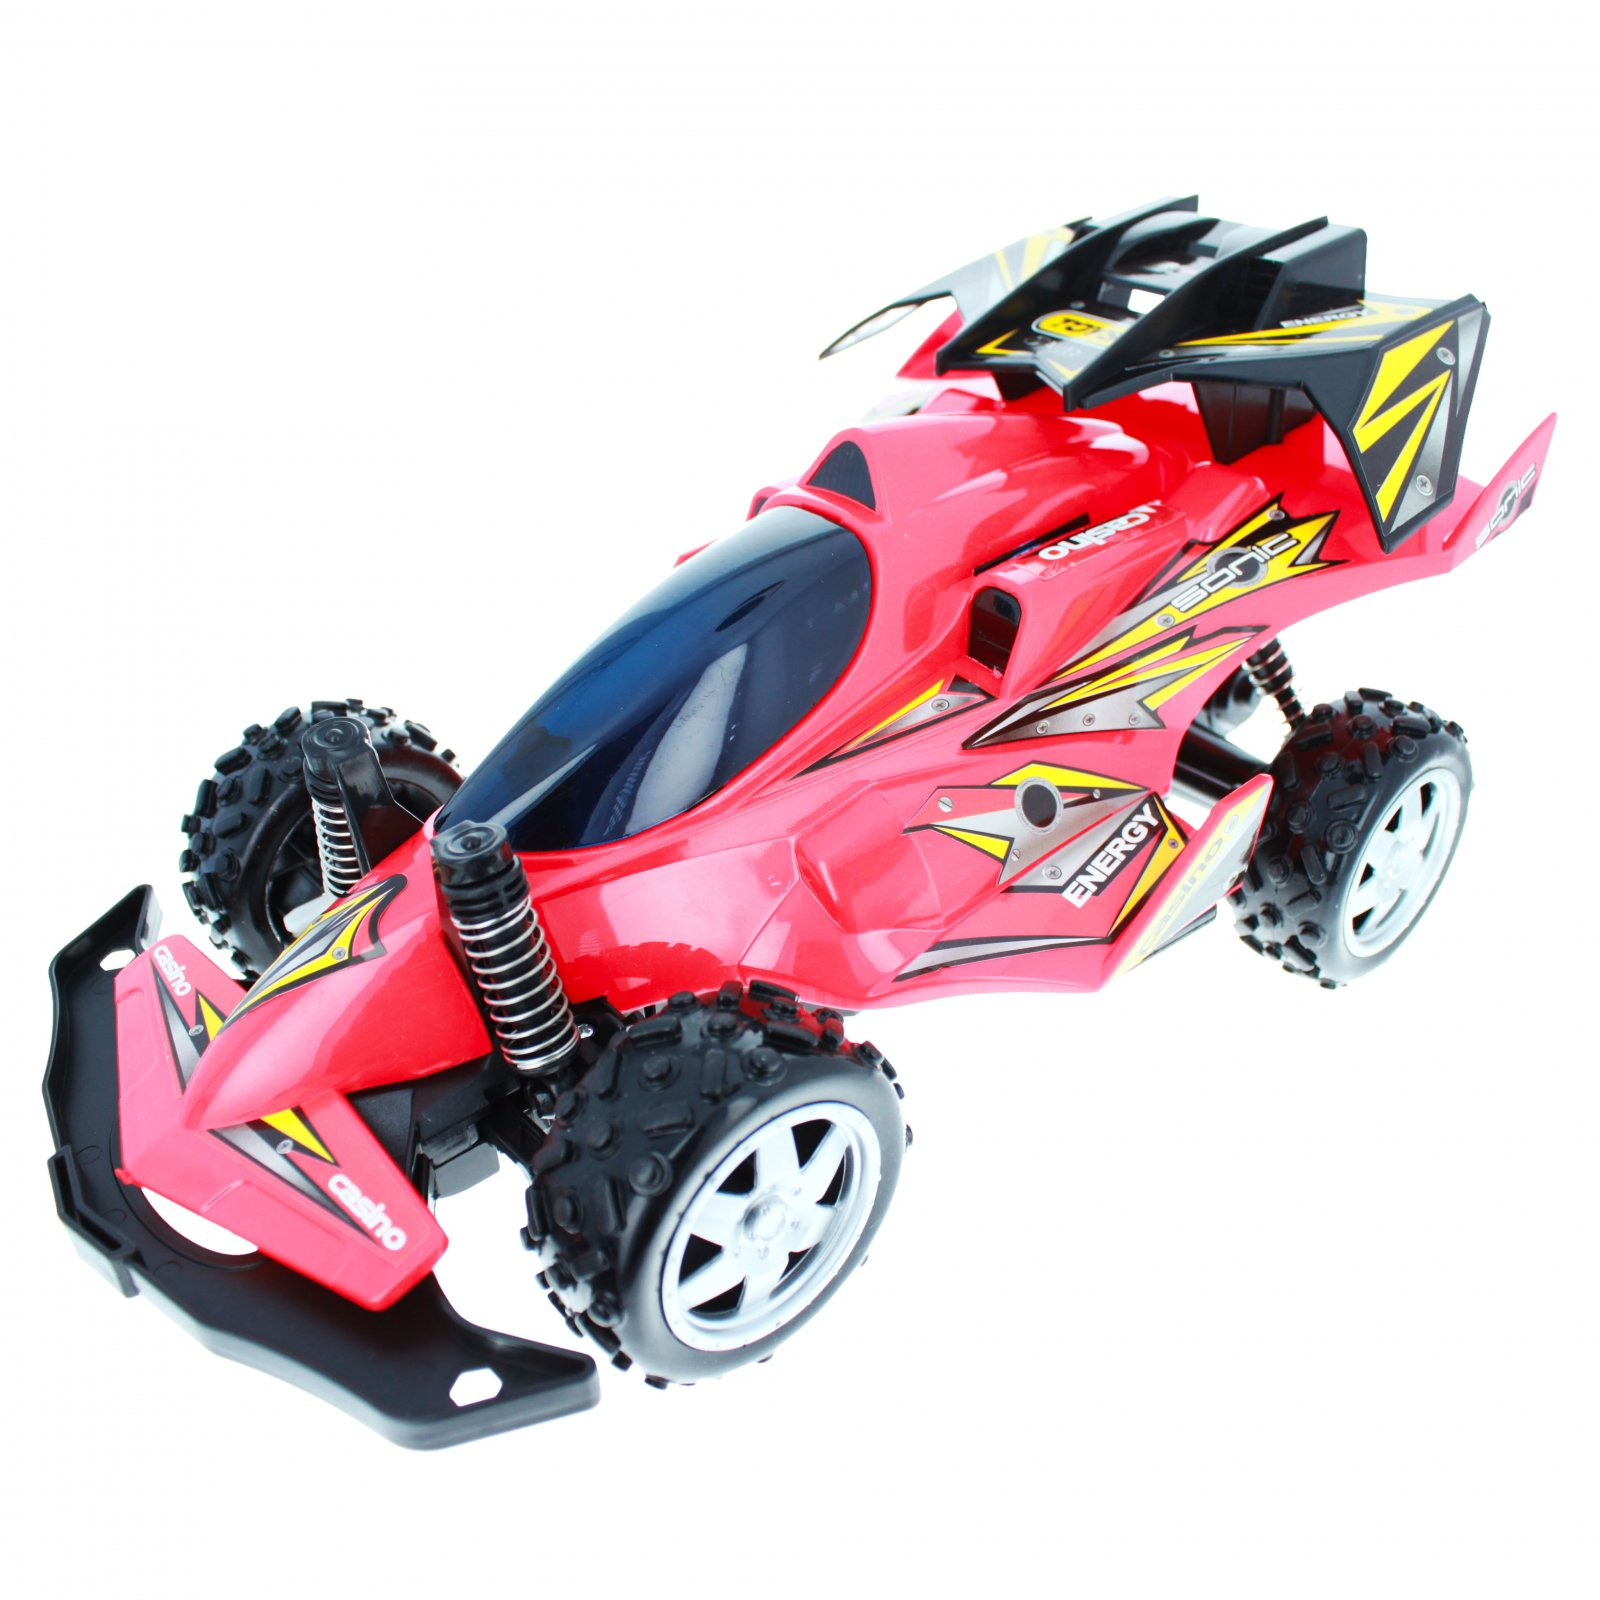 High Speed R/C Dune Buggy Vehicle - Red